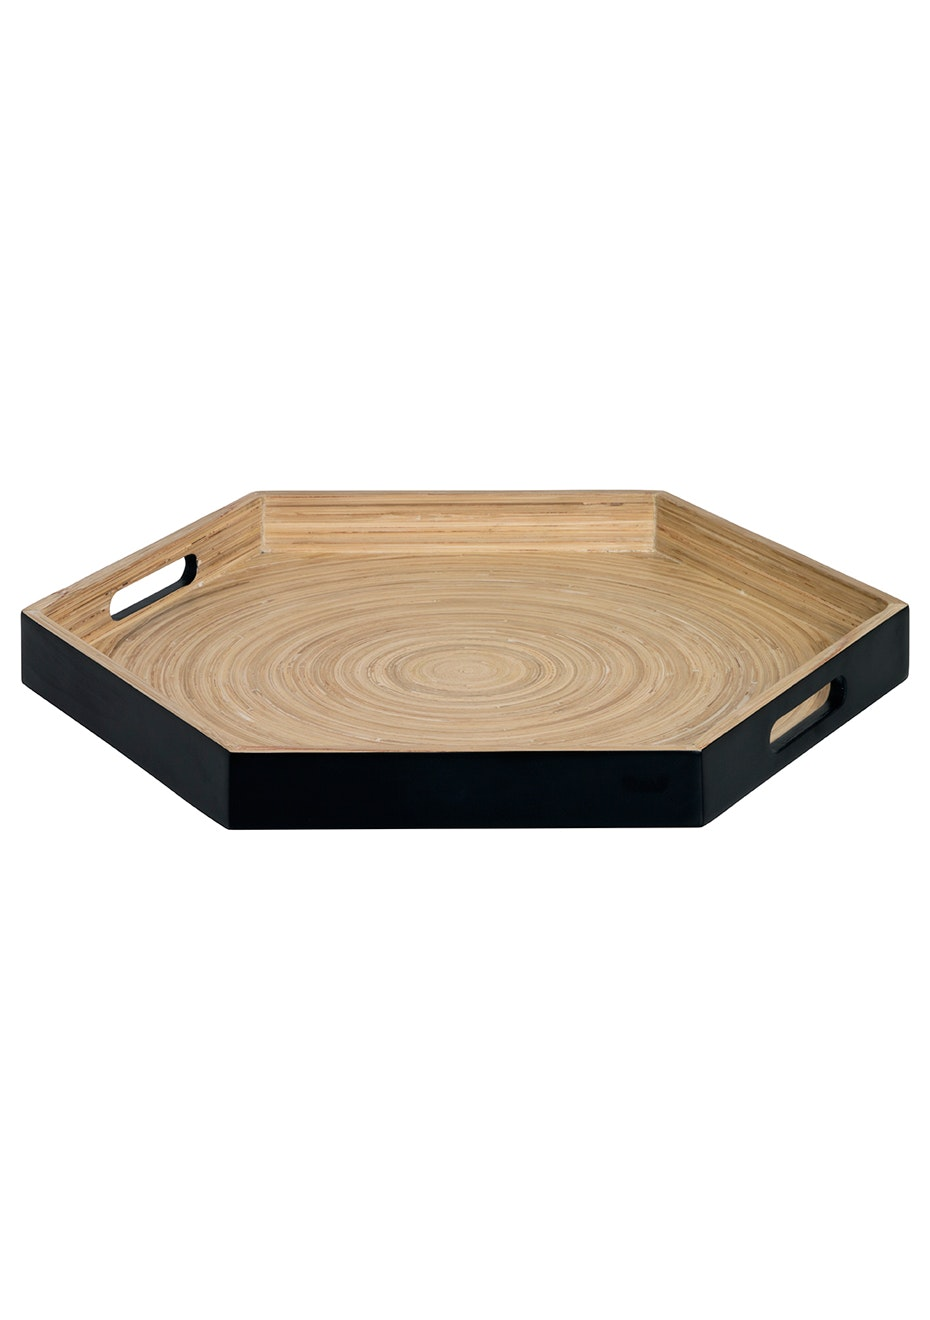 Lacquered Metallic Tray - Black/Wood